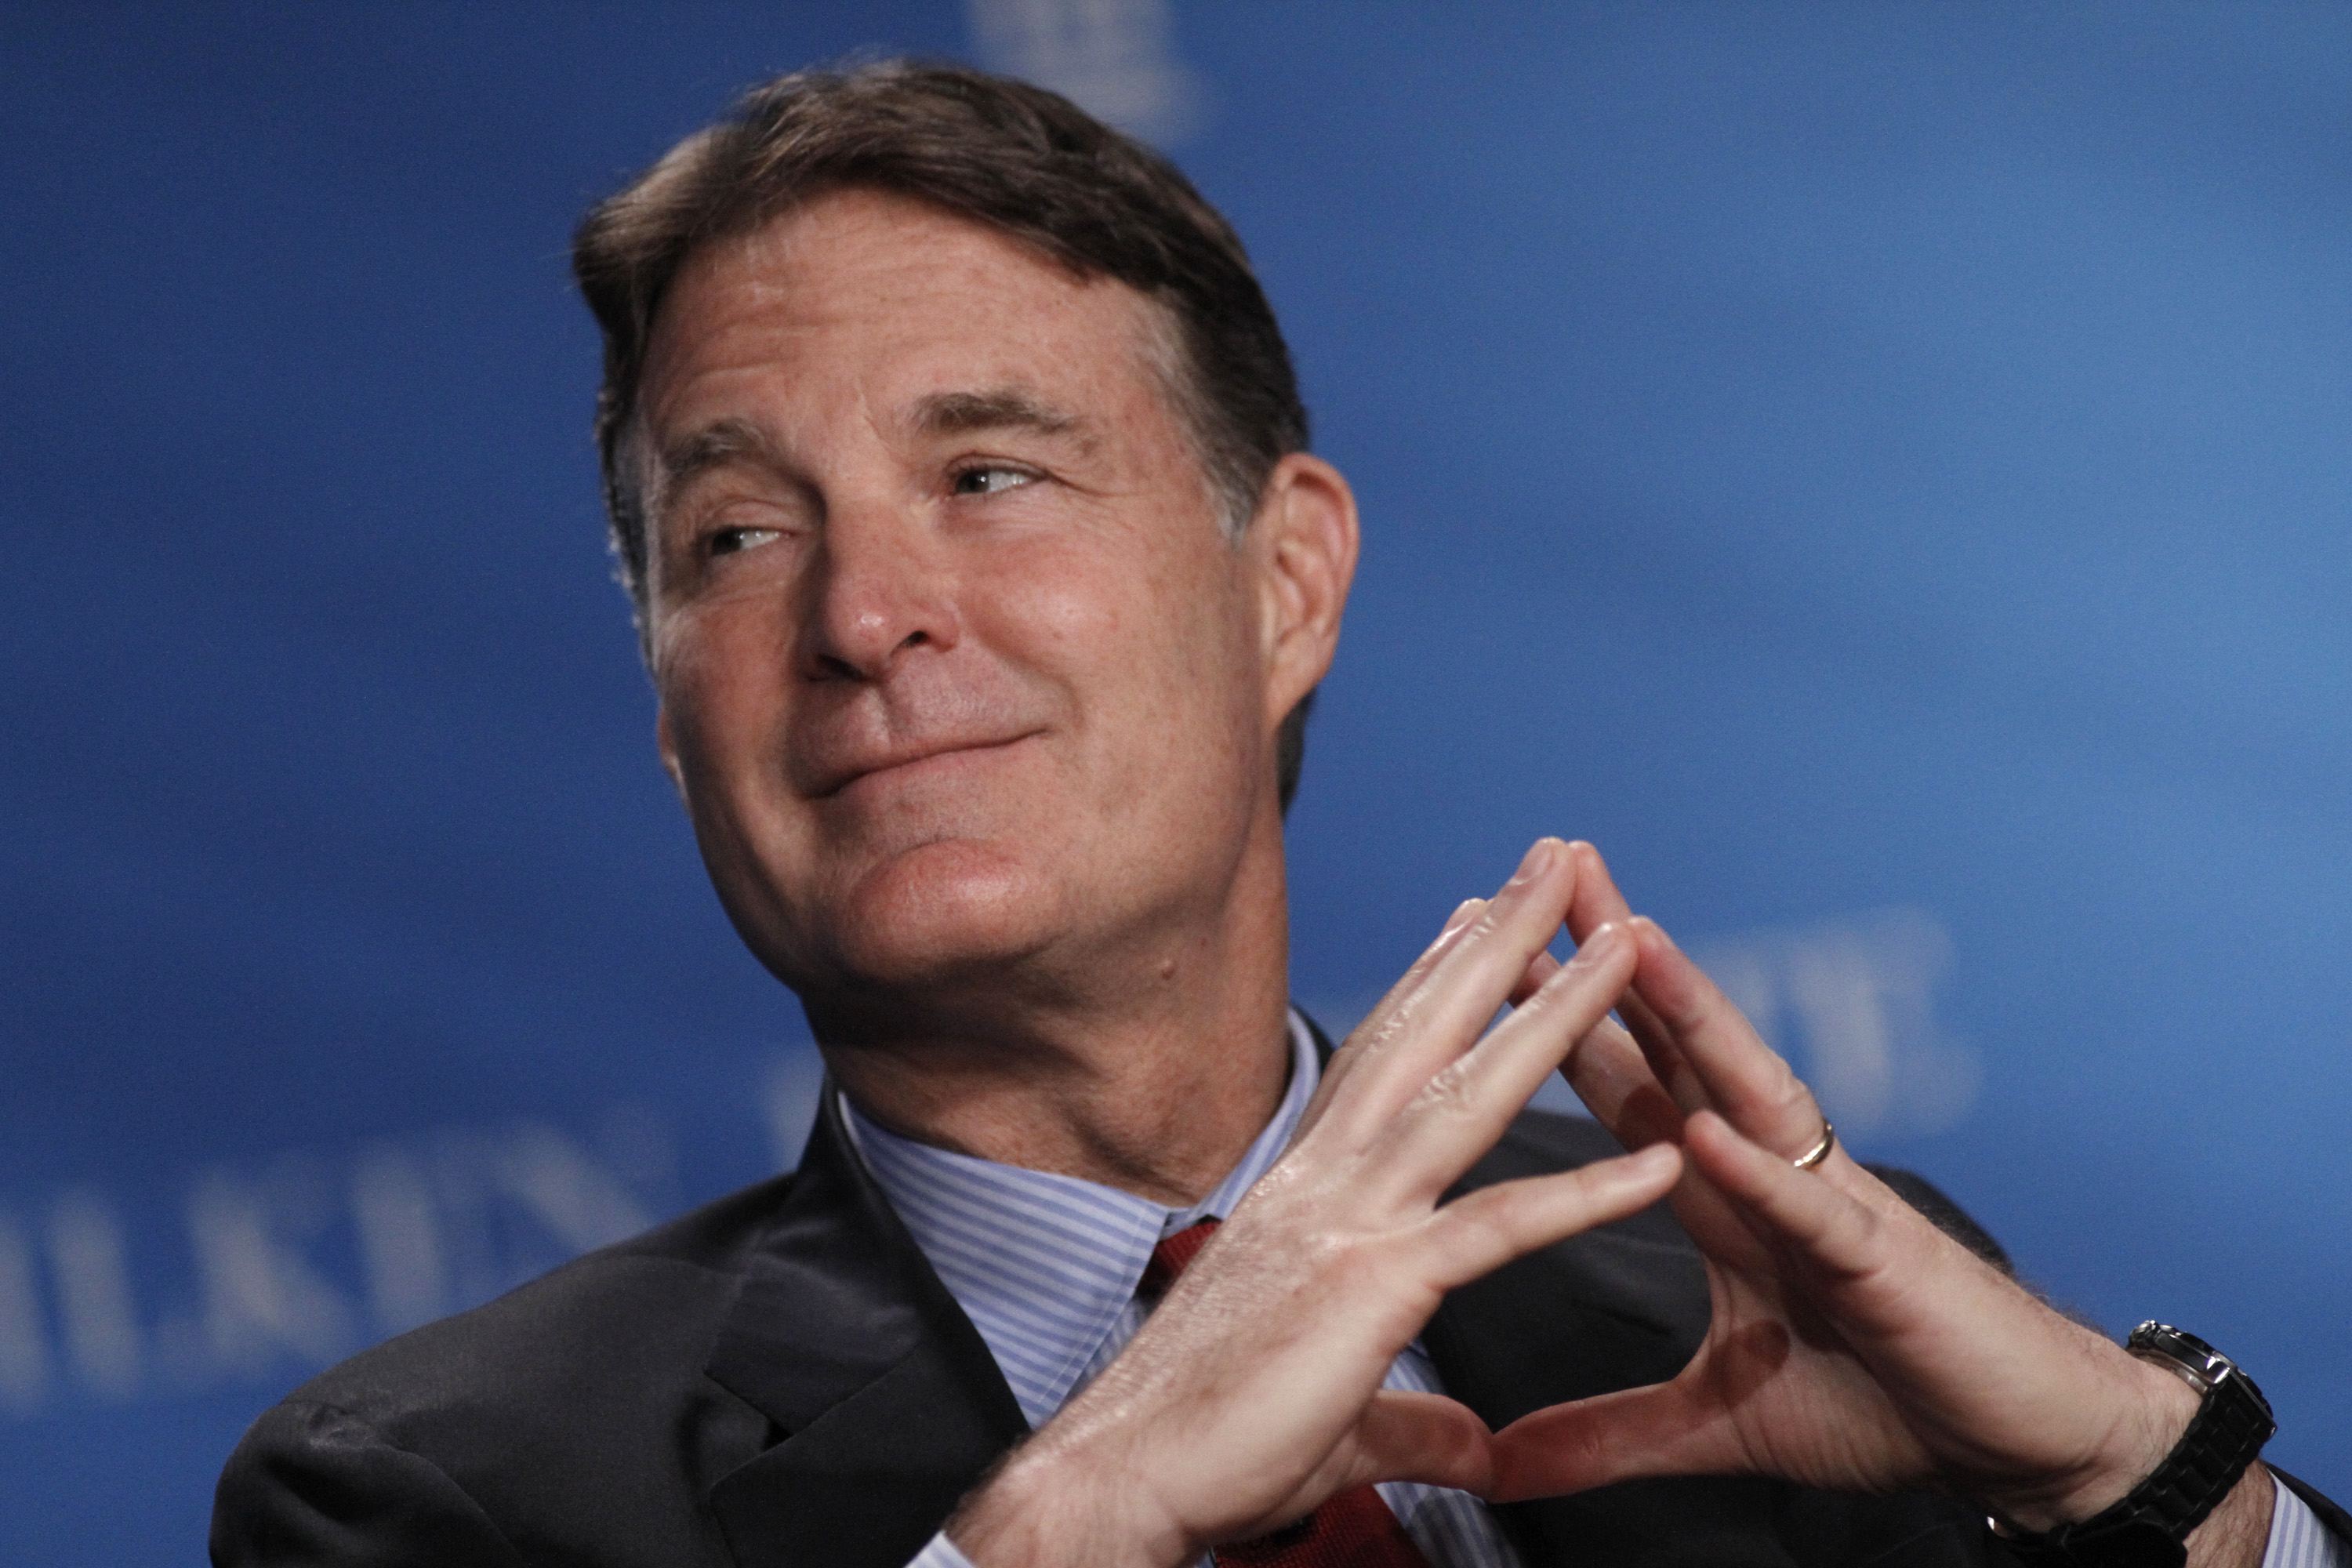 Former Senator Evan Bayh, senior advisor with Apollo Global Management, participates in a panel discussion at the annual Milken Institute Global Conference in Beverly Hills, California, U.S., on Tuesday, May 1, 2012.